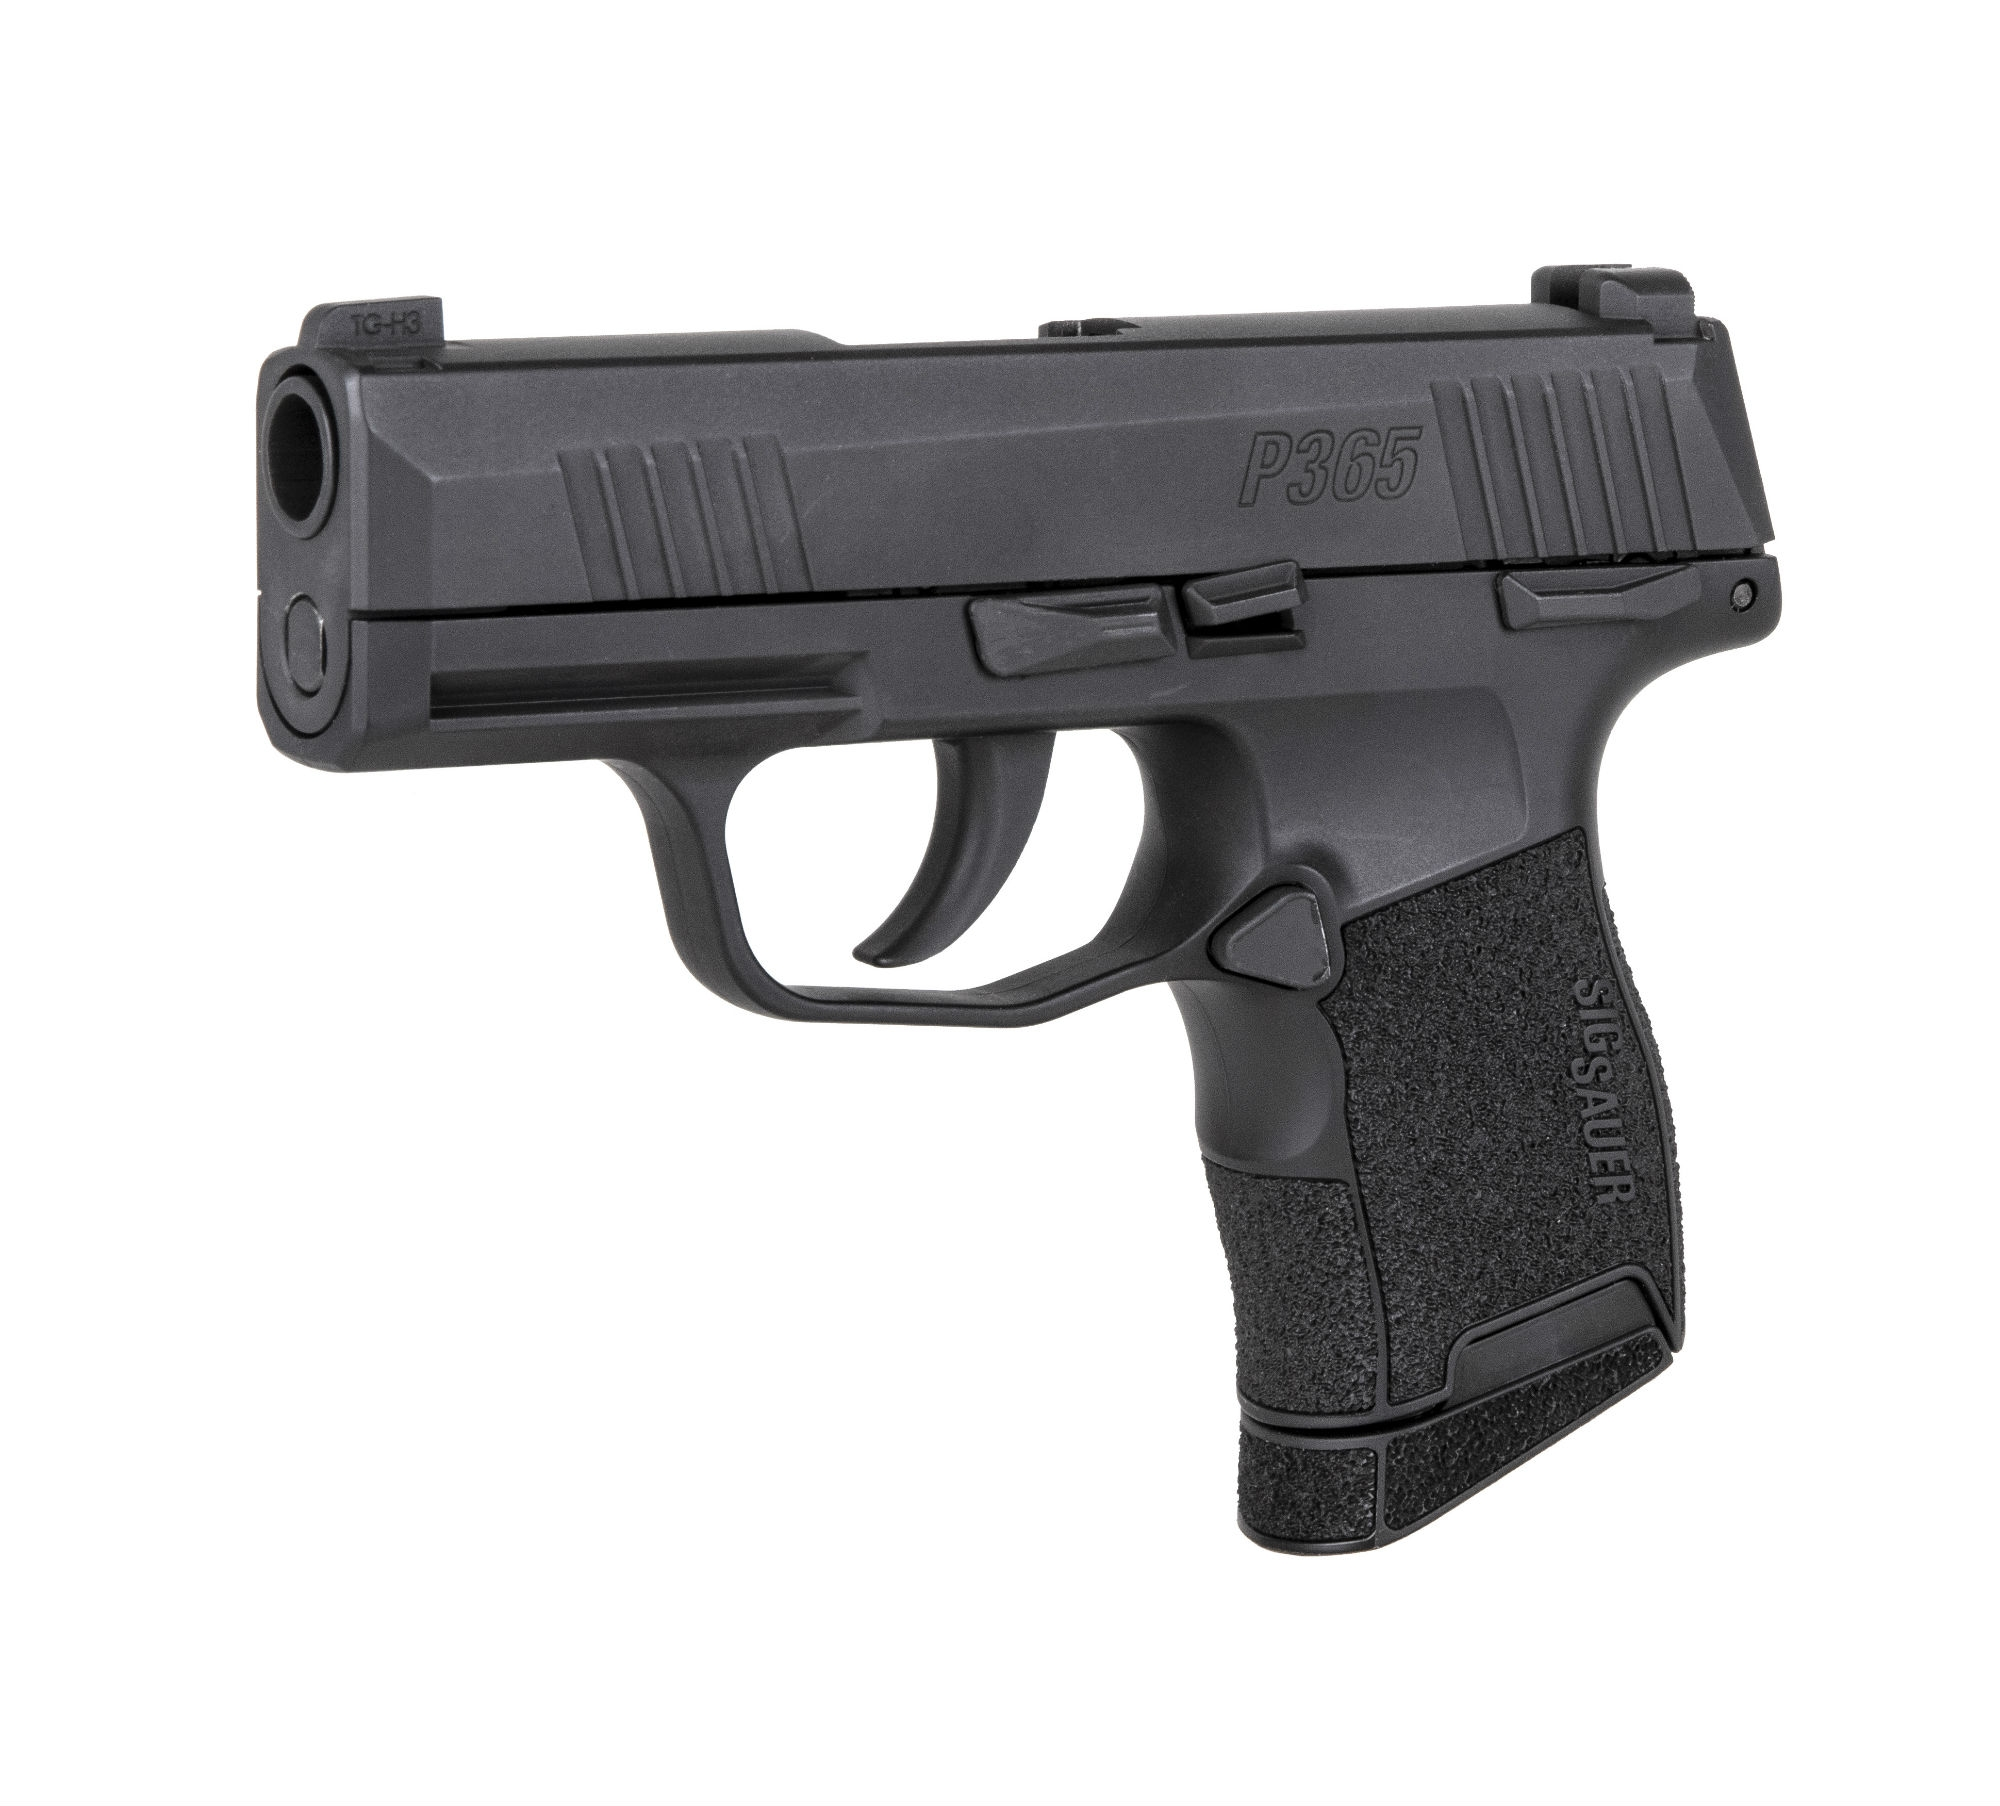 SIG Sauer P365 BB air pistol, left side view